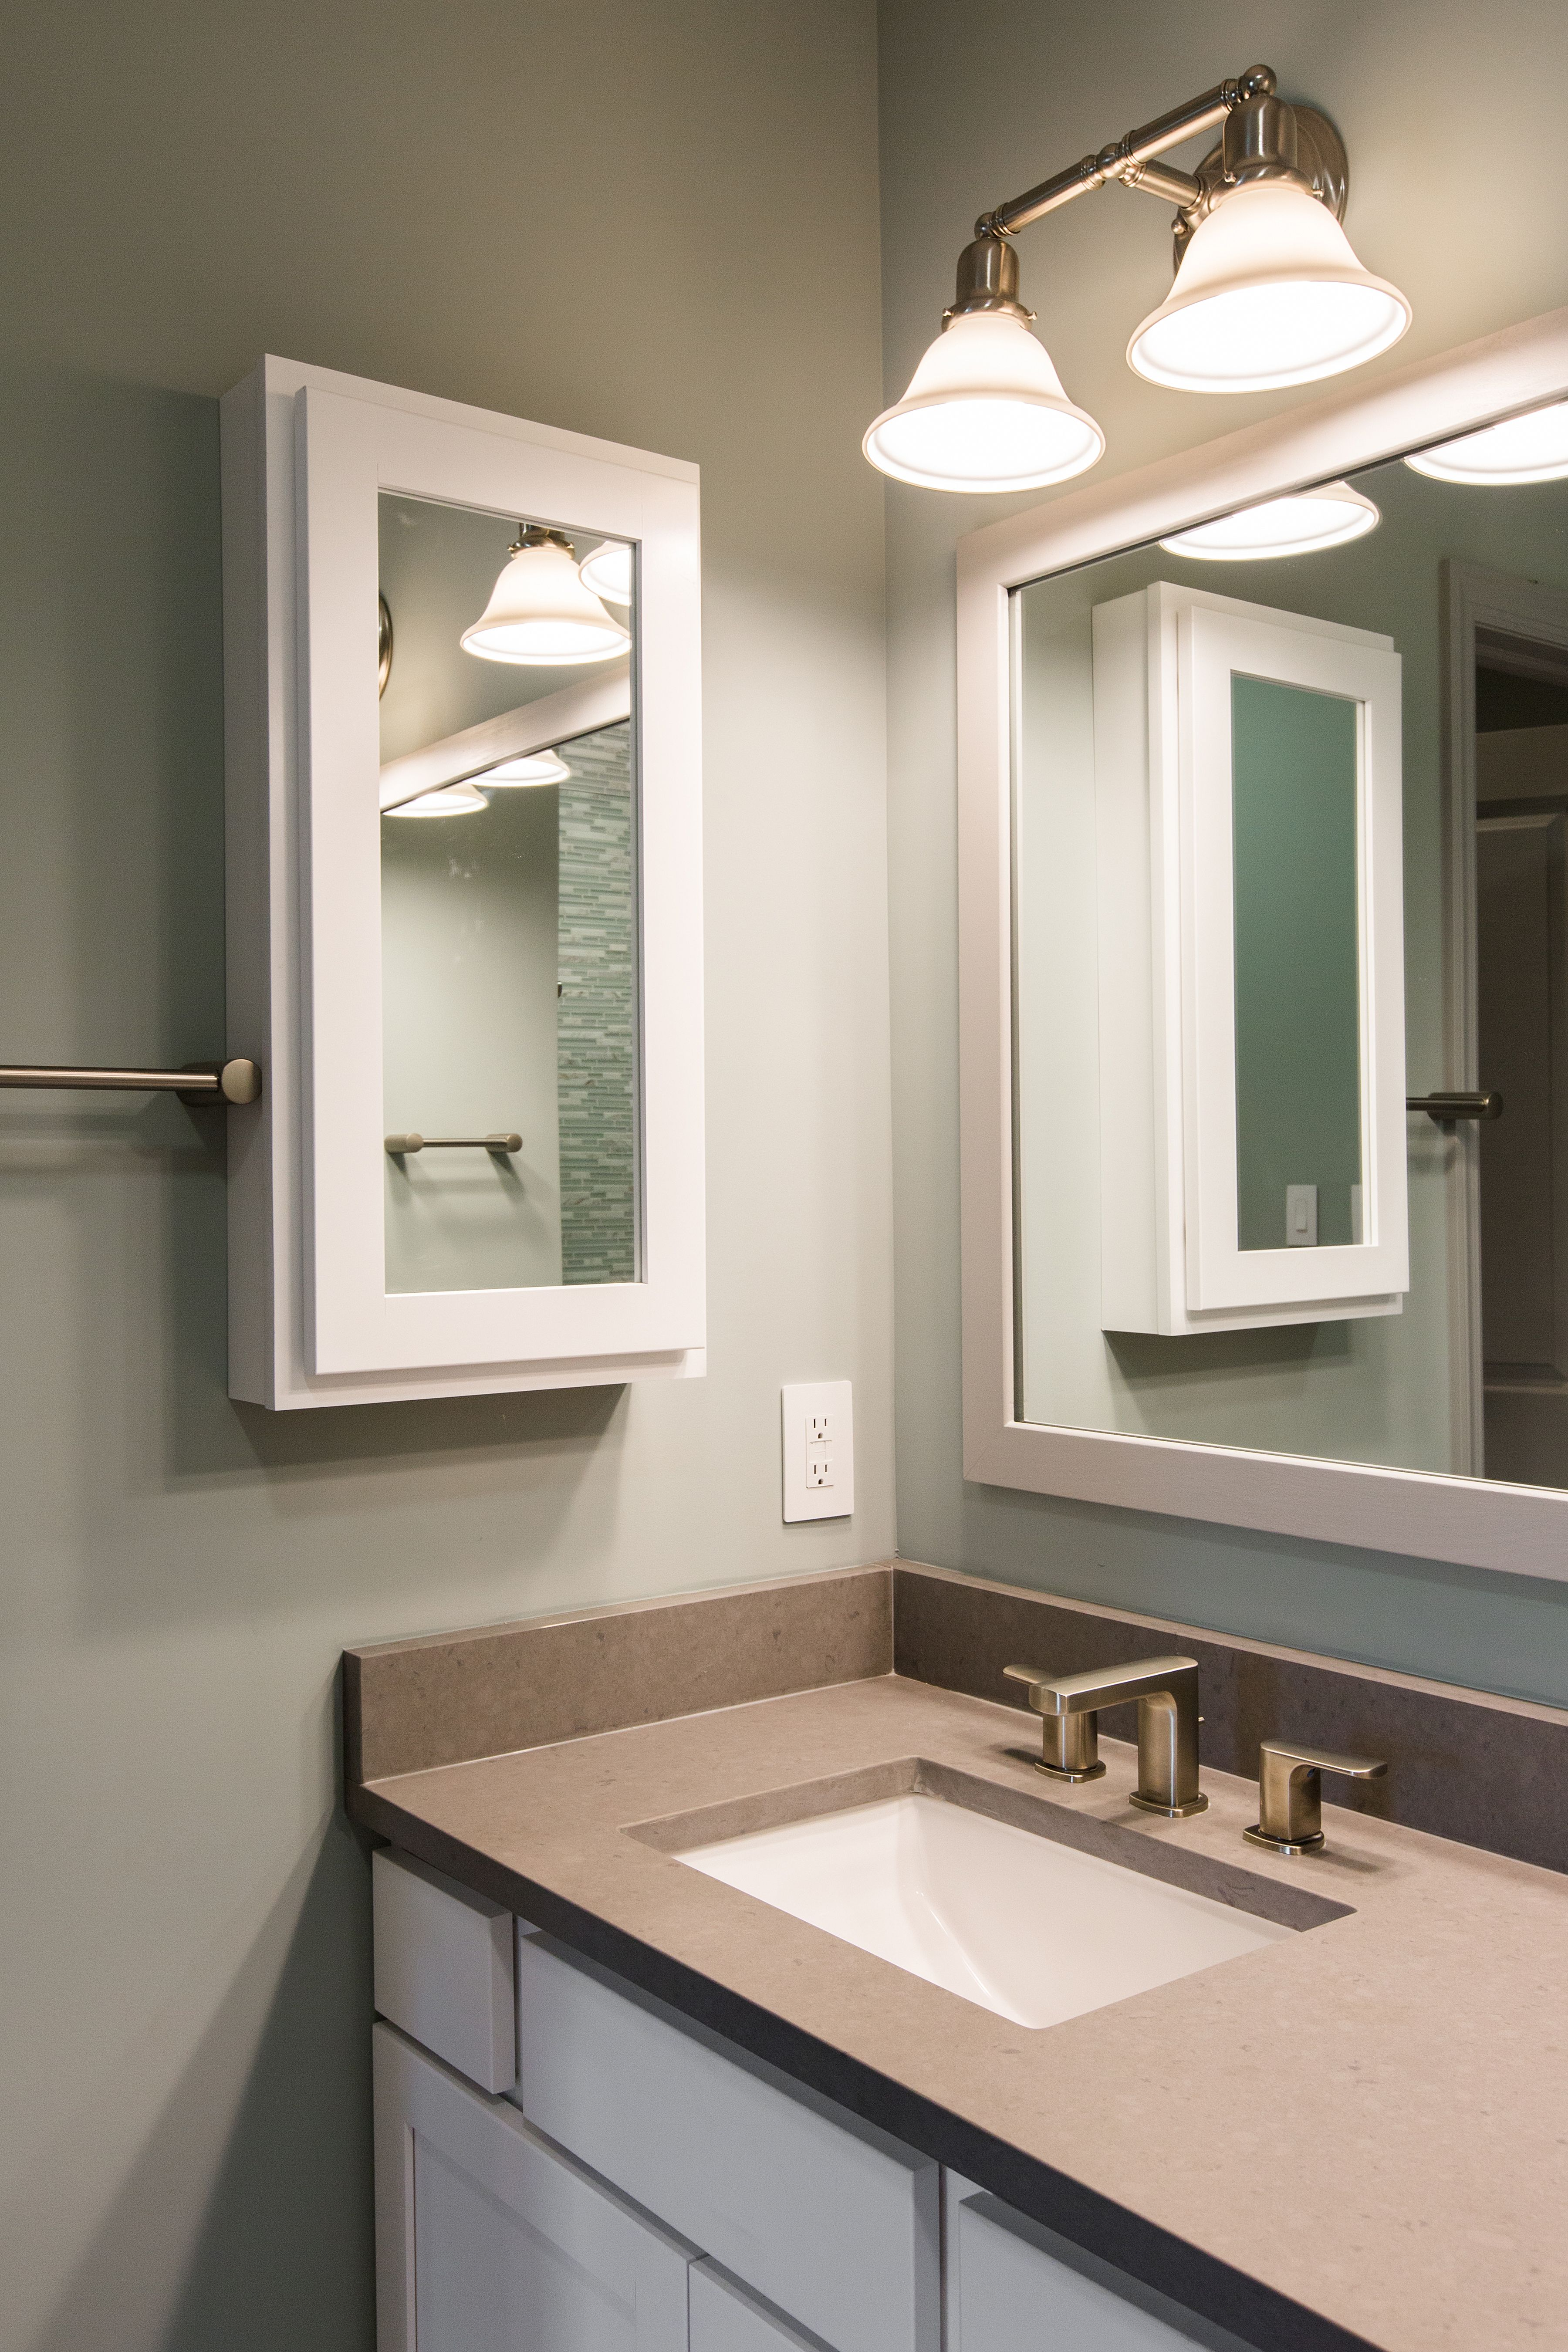 A Surface Mount Medicine Cabinet Can Help Solve The Need For Additional Storage Surface Mount Medicine Cabinet Lighted Bathroom Mirror Bathroom Lighting